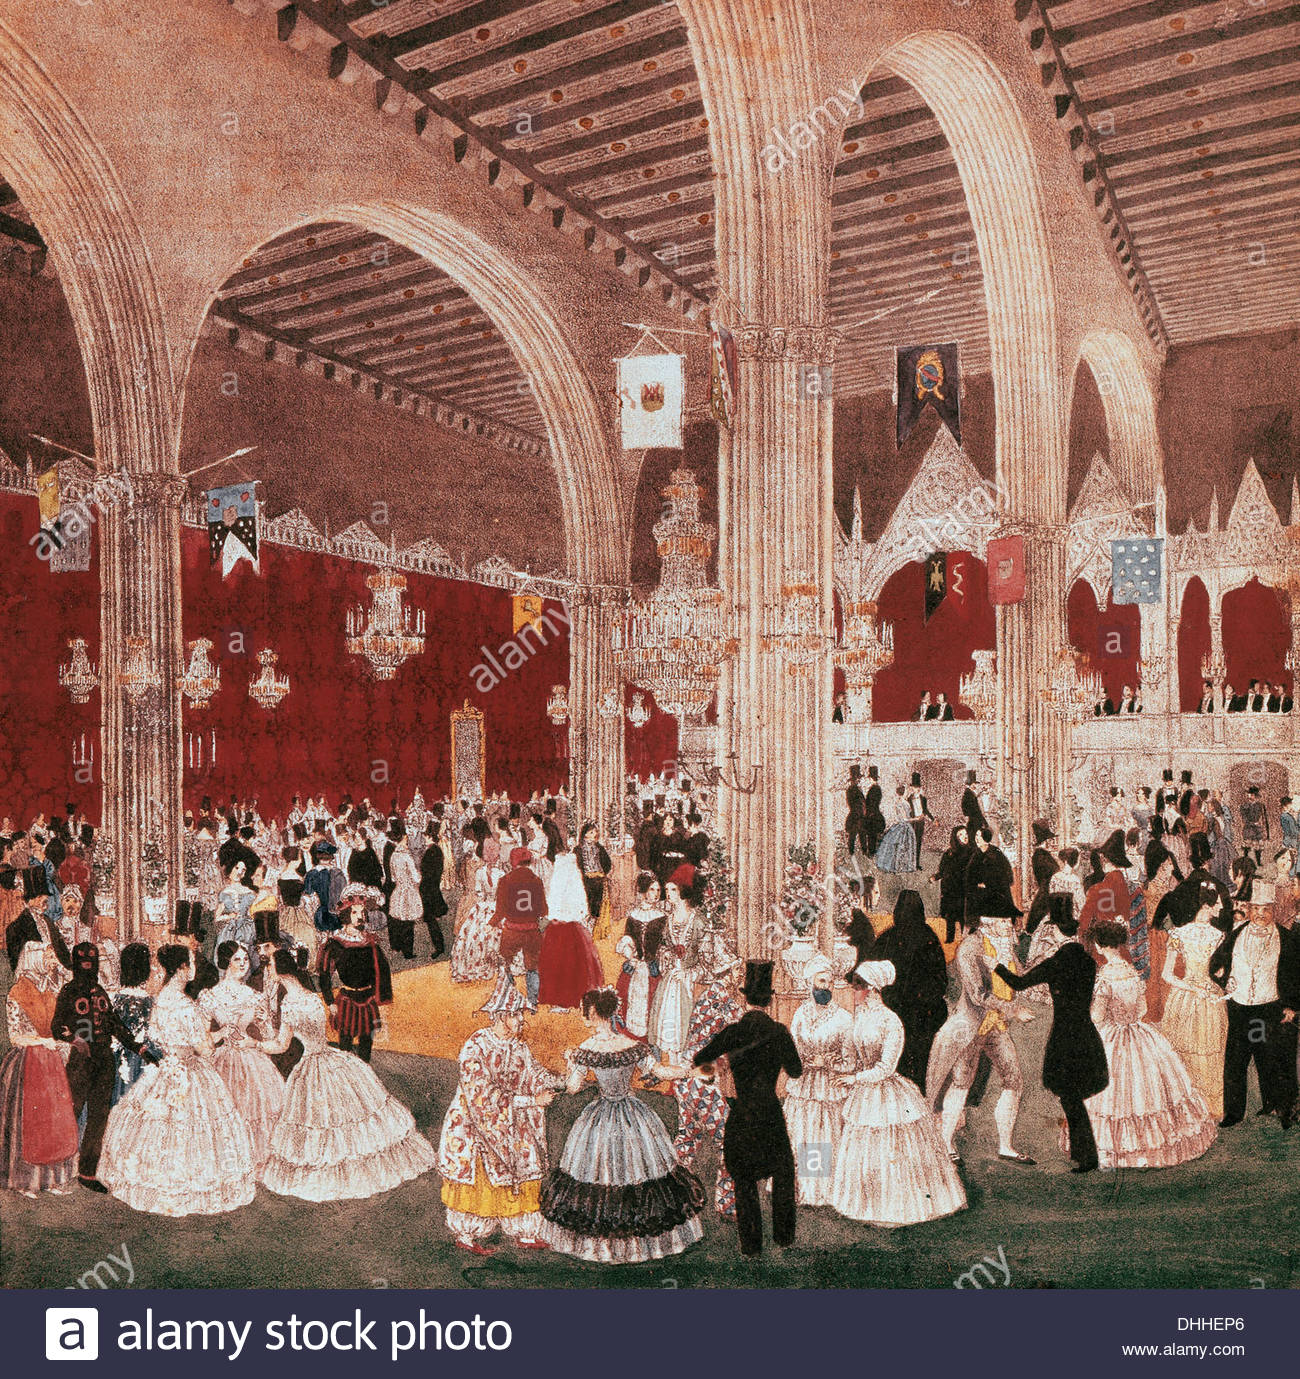 Spain. Catalonia. Dancing in the building of the Lonja of Barcelona, 1826. Lithography by Onofre Alsamora (1810 - Stock Image